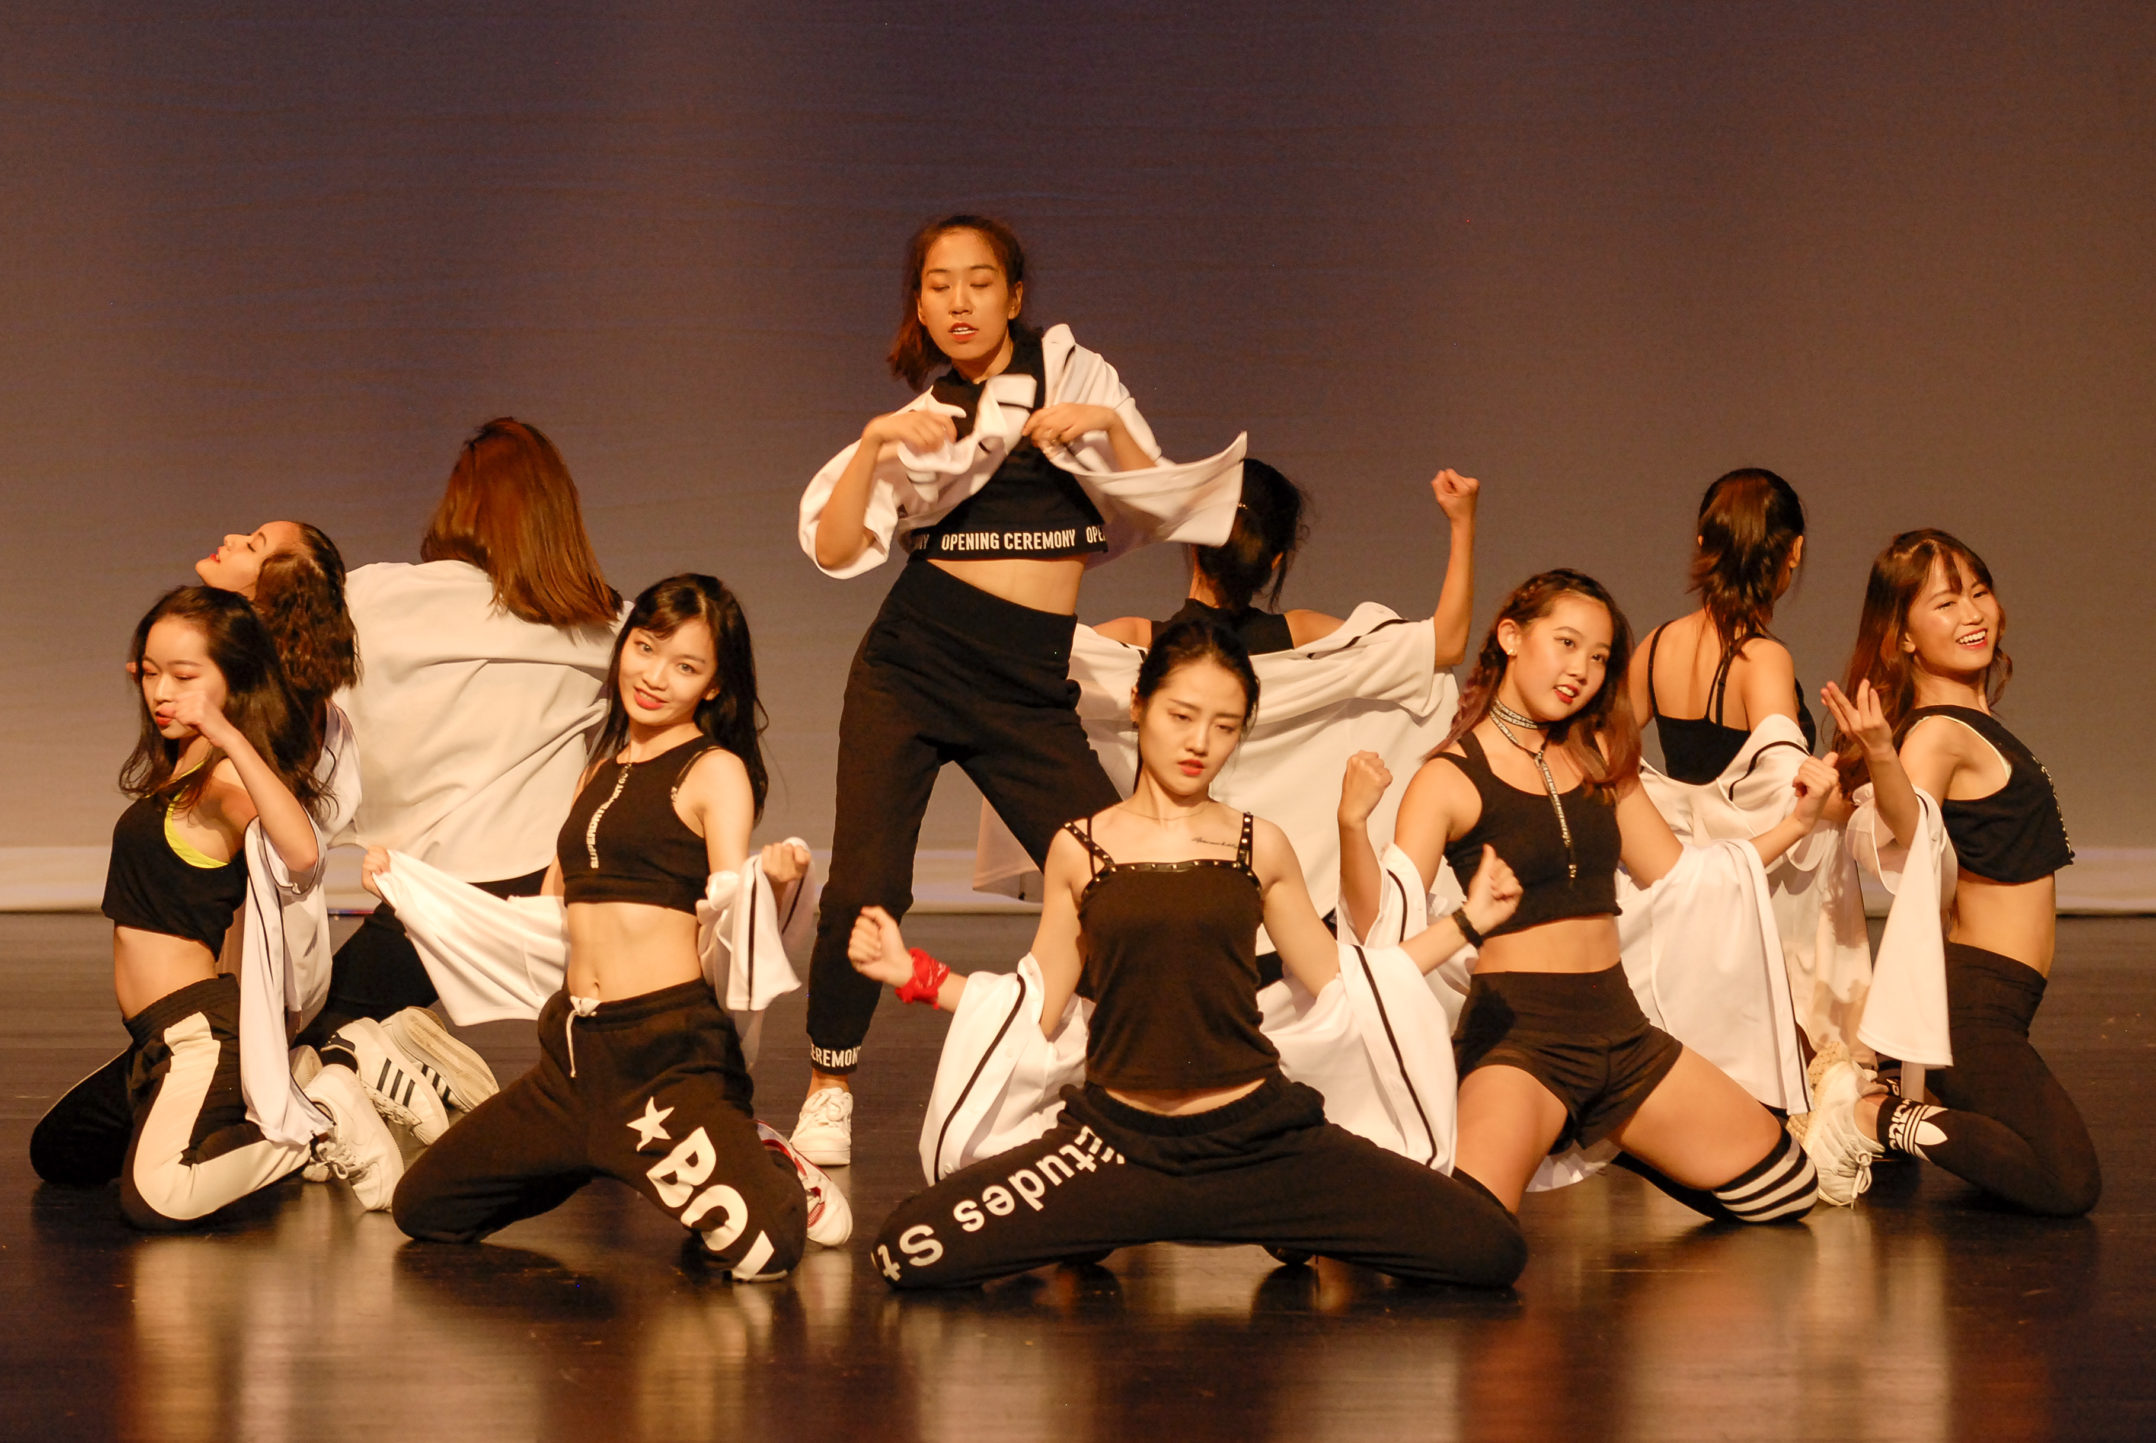 Members of Helius Dance Club perform at FUSION on Thursday, Nov. 9, 2017, in Zoellner Arts Center. Helius is a multicultural dance group that combines American and Asian hip-hop. (Roshan Giyanani/B&W Staff)